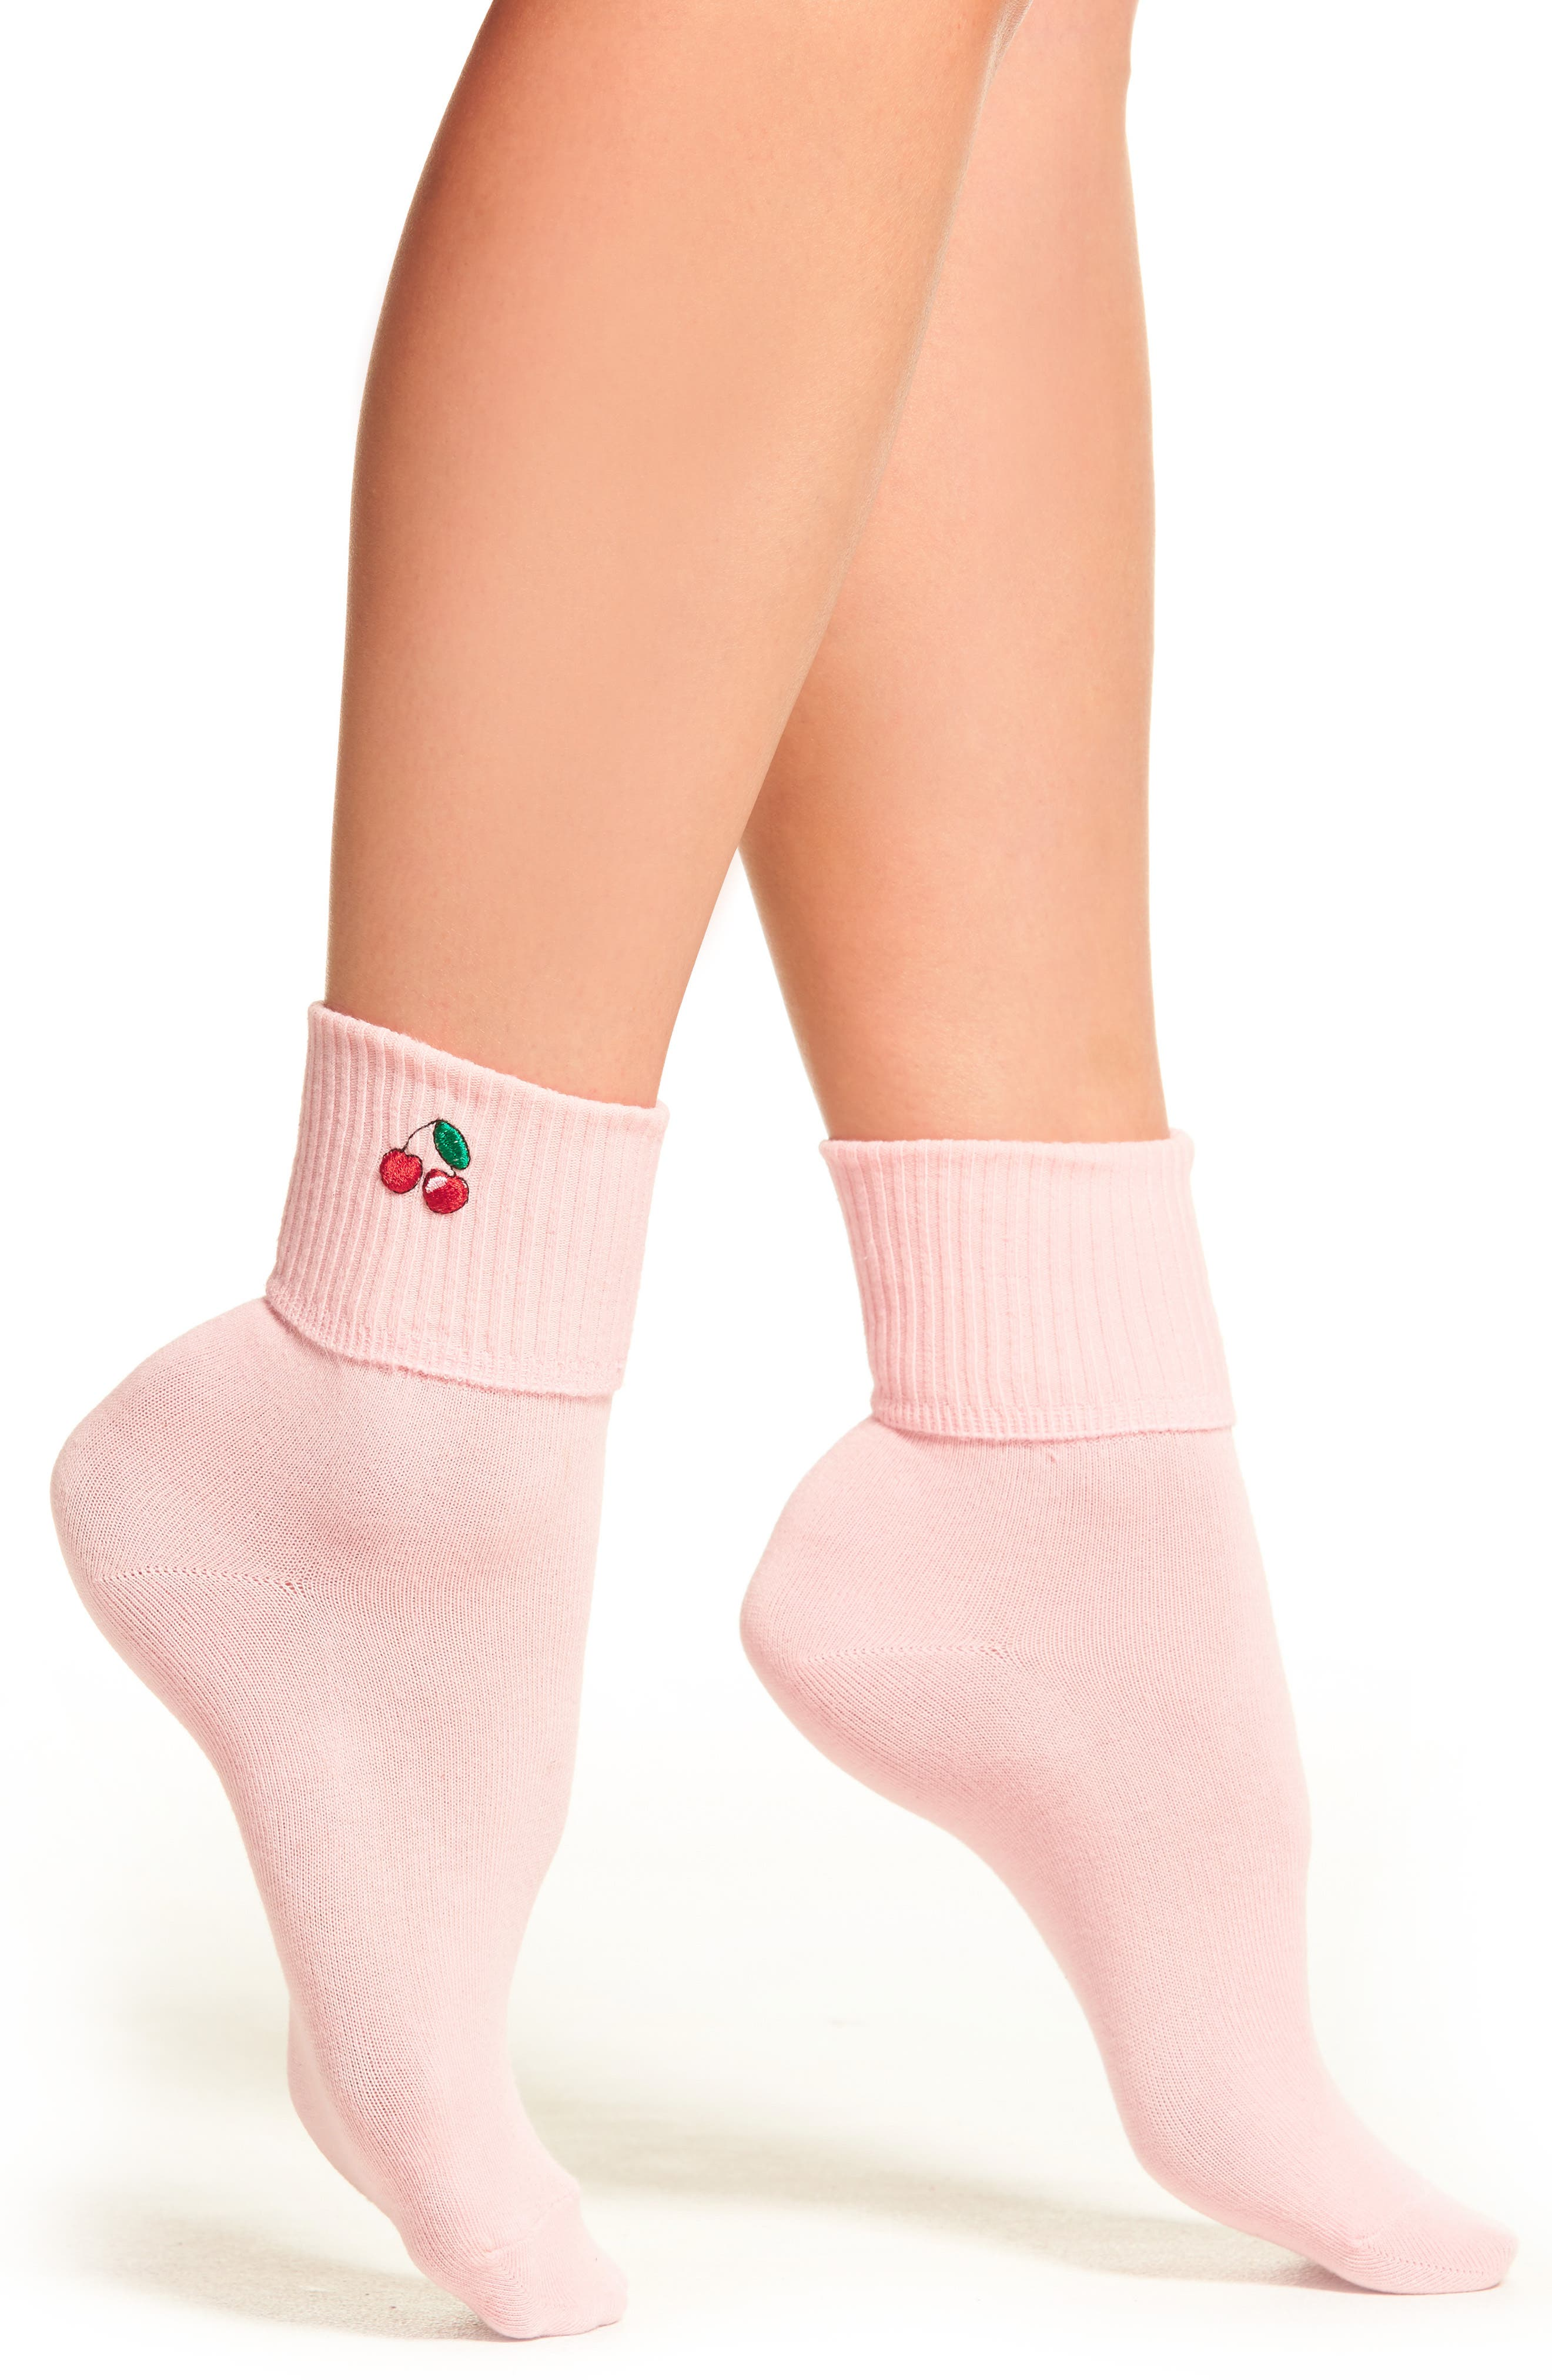 Cherry Socks,                         Main,                         color, Pink/ Red